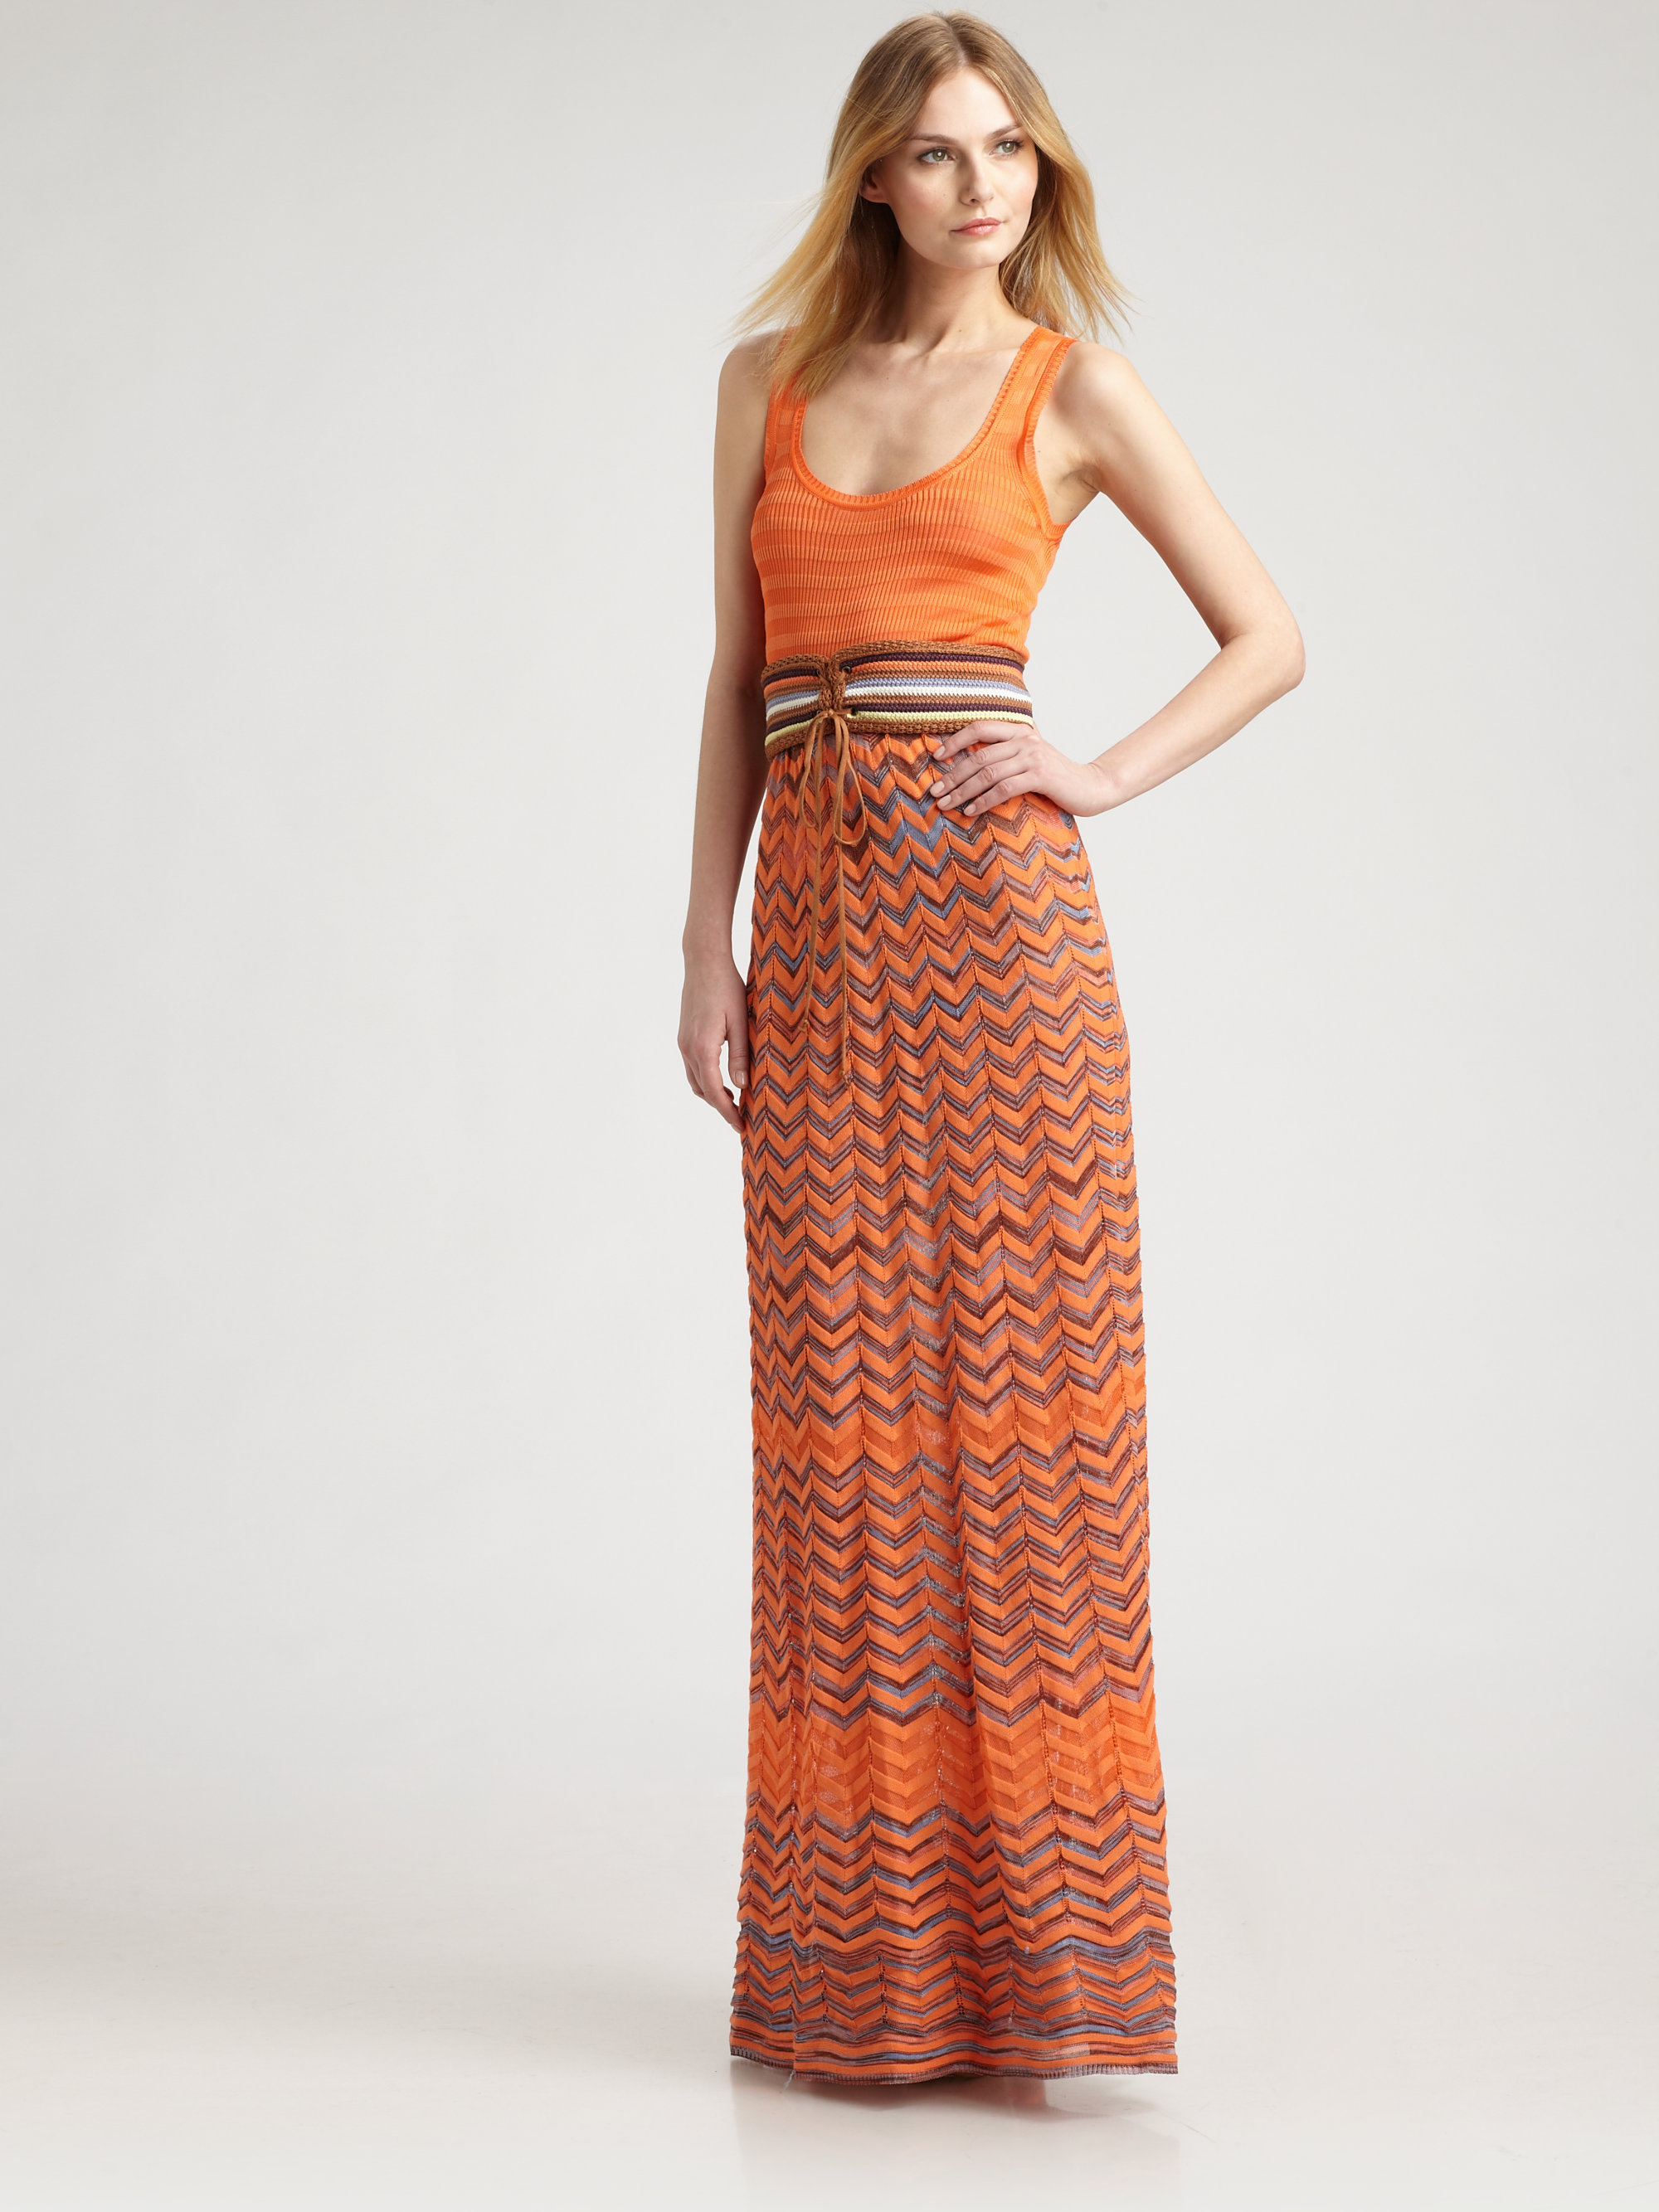 M missoni Zigzag Maxi Dress in Orange | Lyst